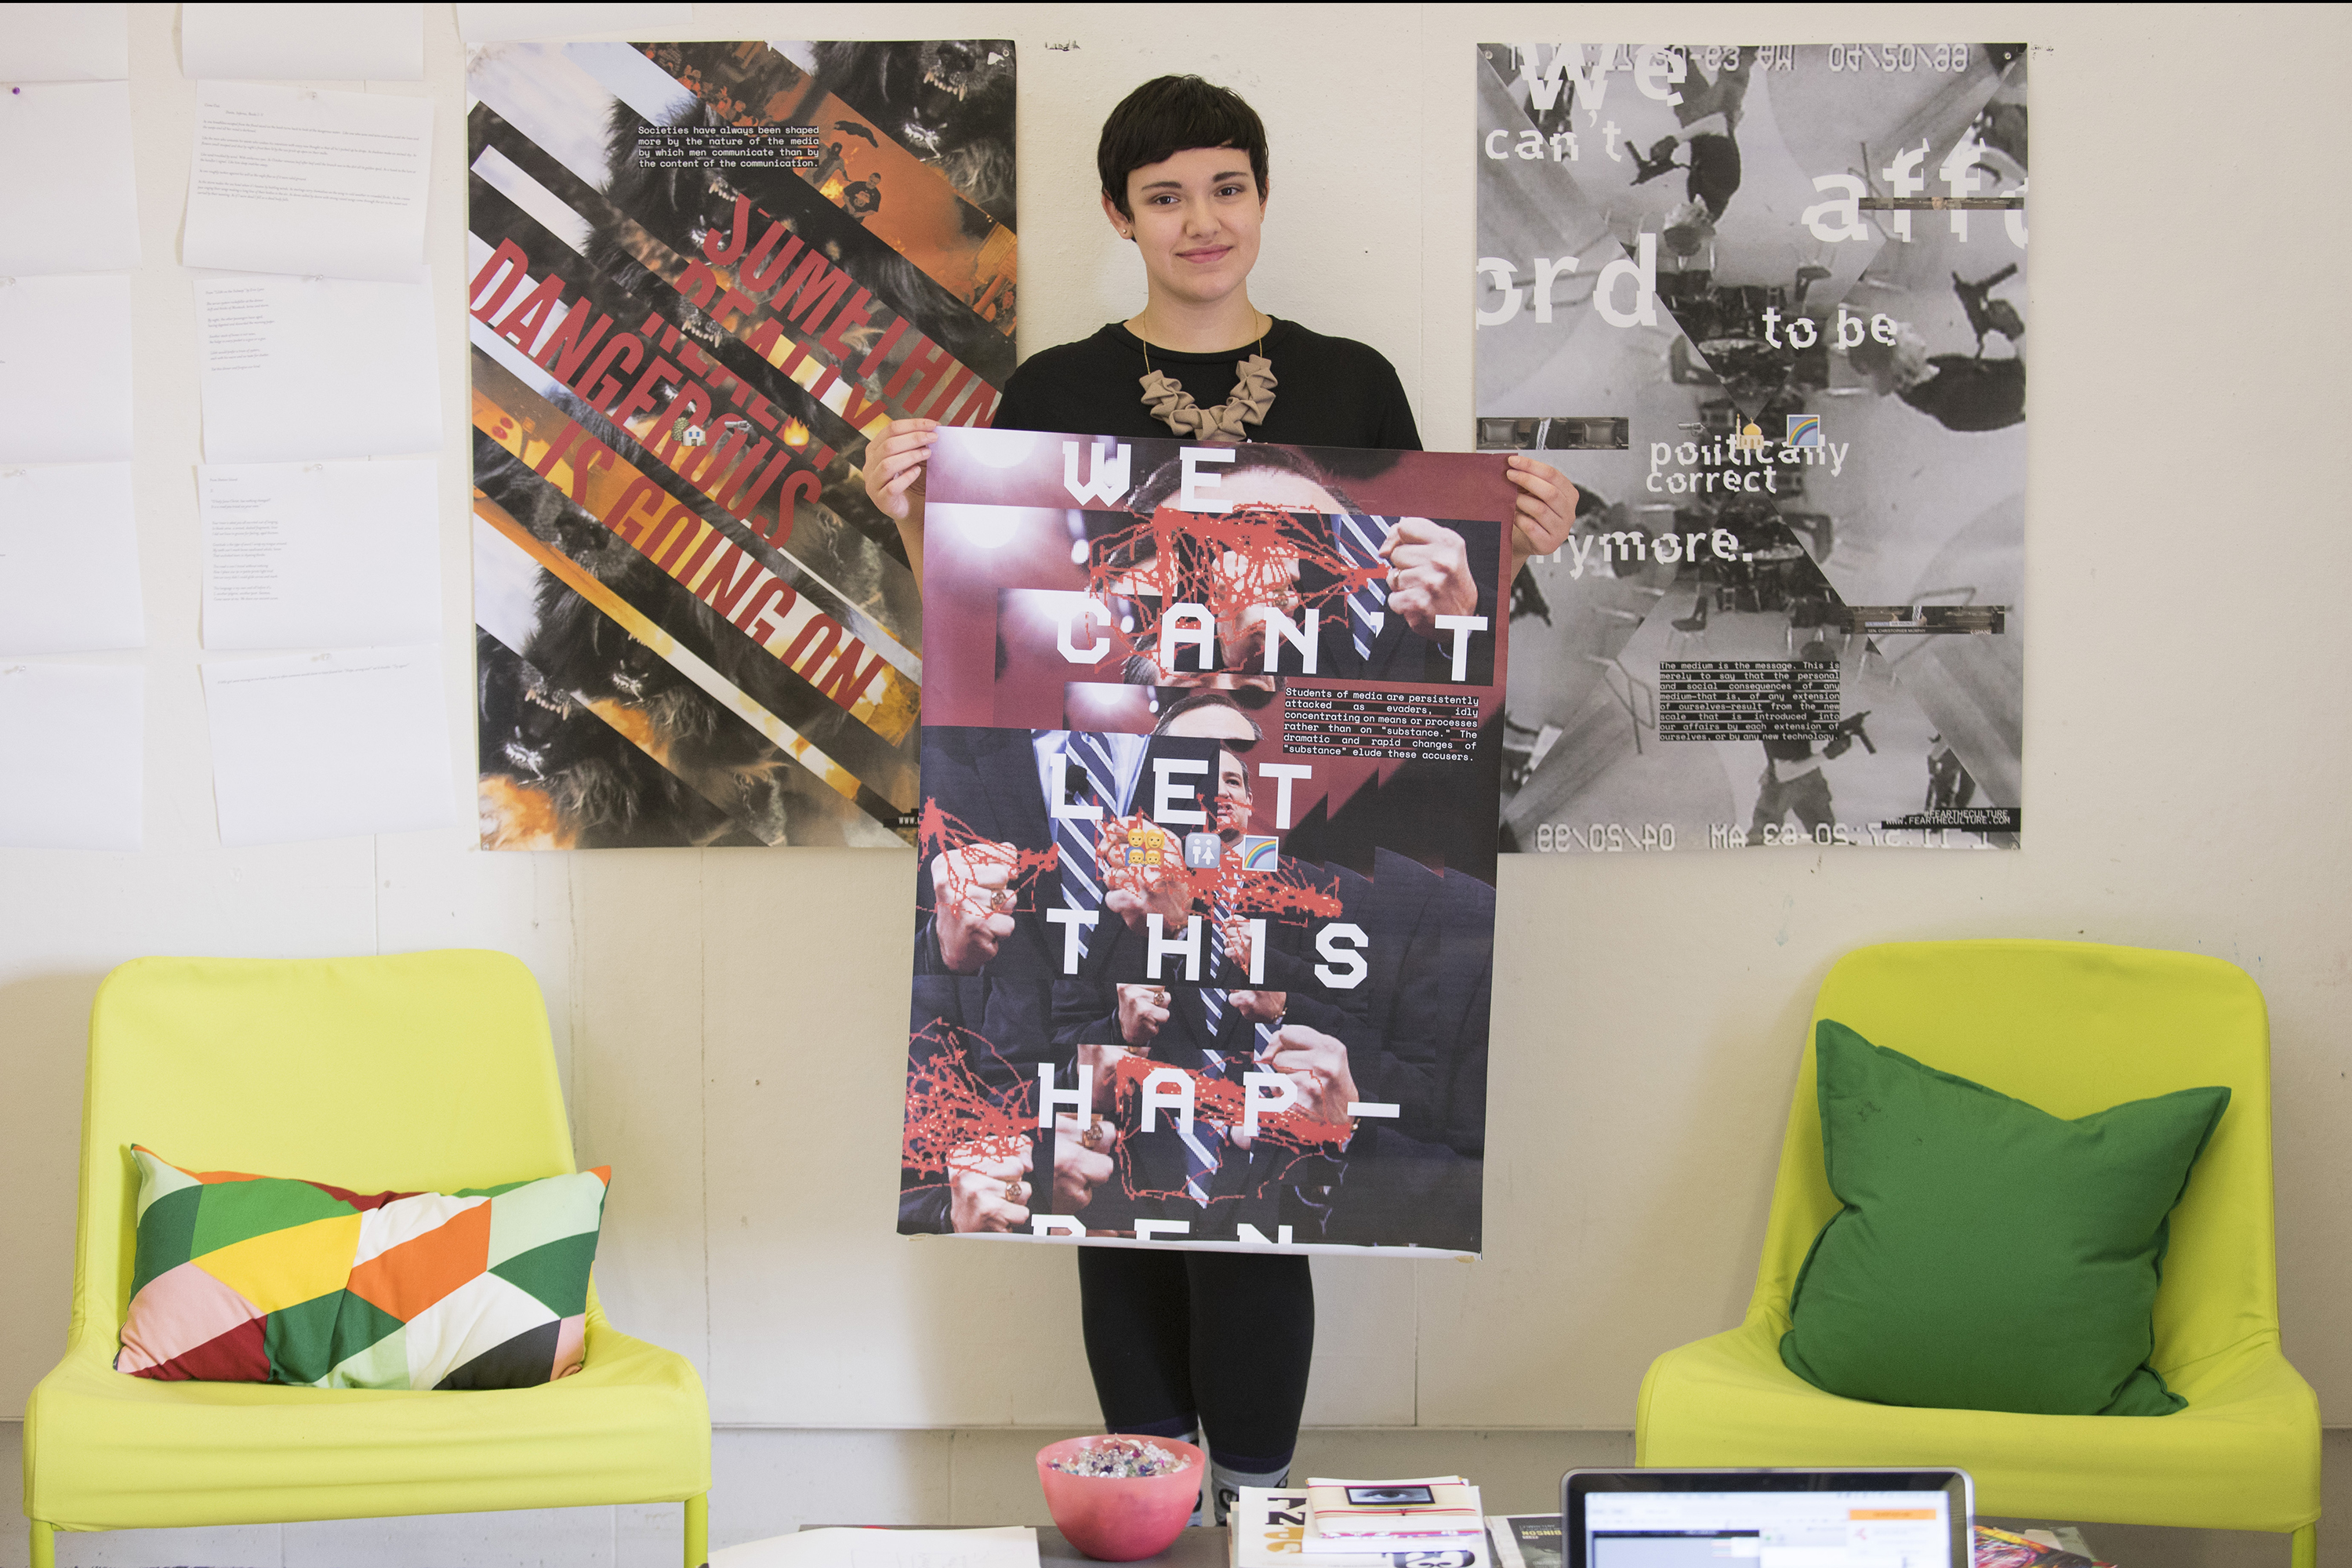 IDEA Grant recipient Raeanne Nuzzo displays poster designs that incorporate images and language from this year's Presidential election campaign. (Sean Flynn/UConn Photo)